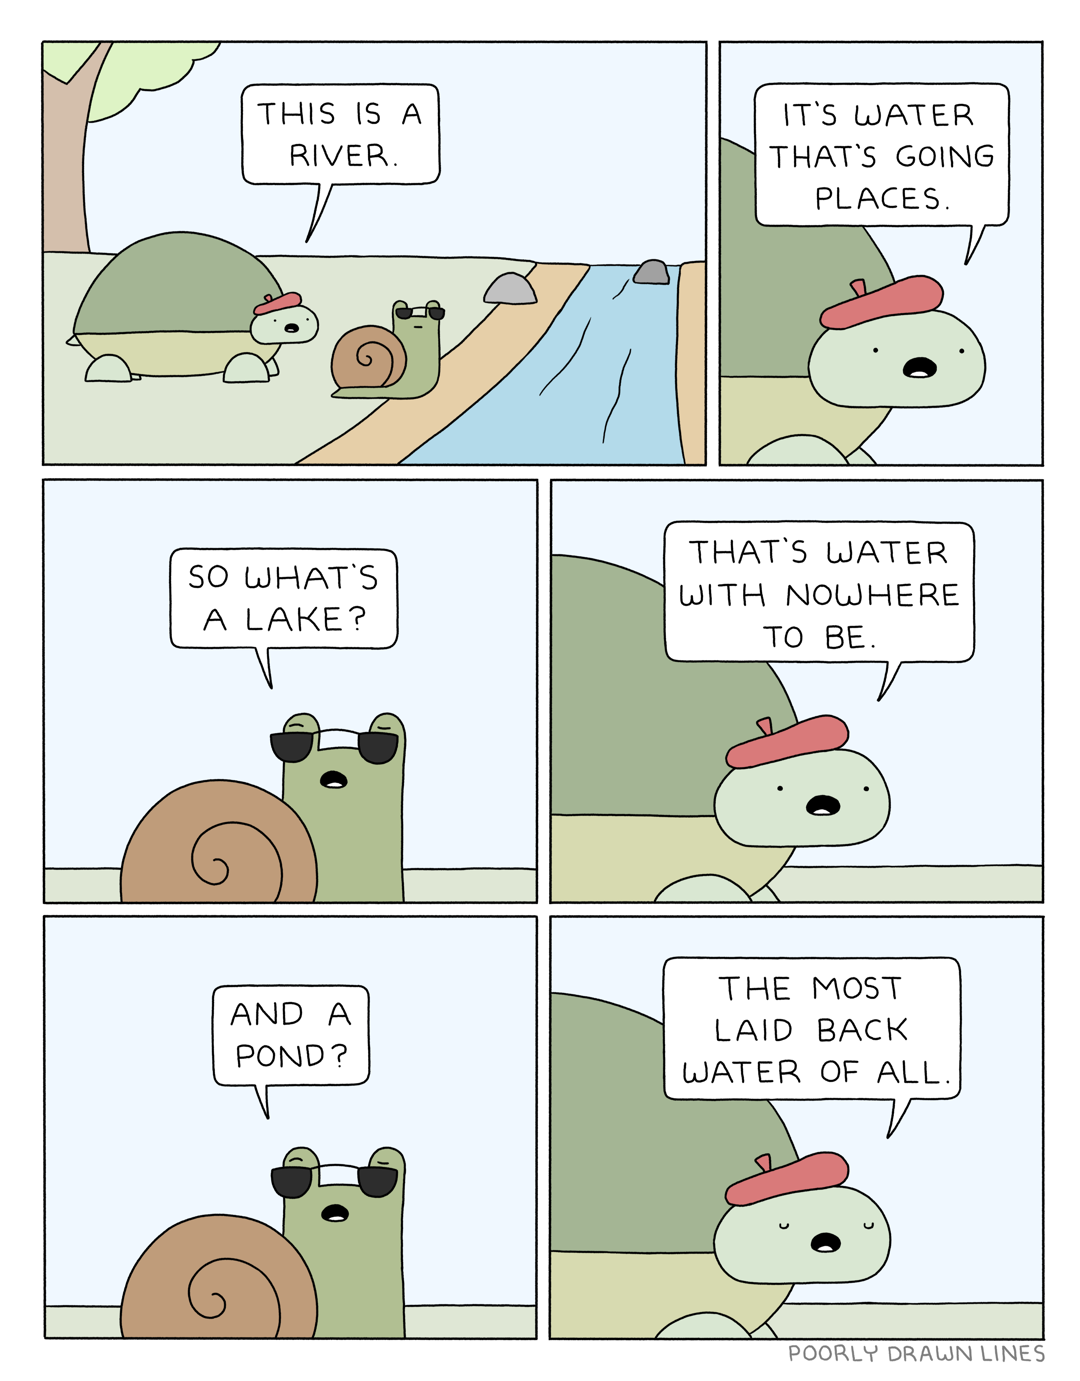 Poorly Drawn Lines -